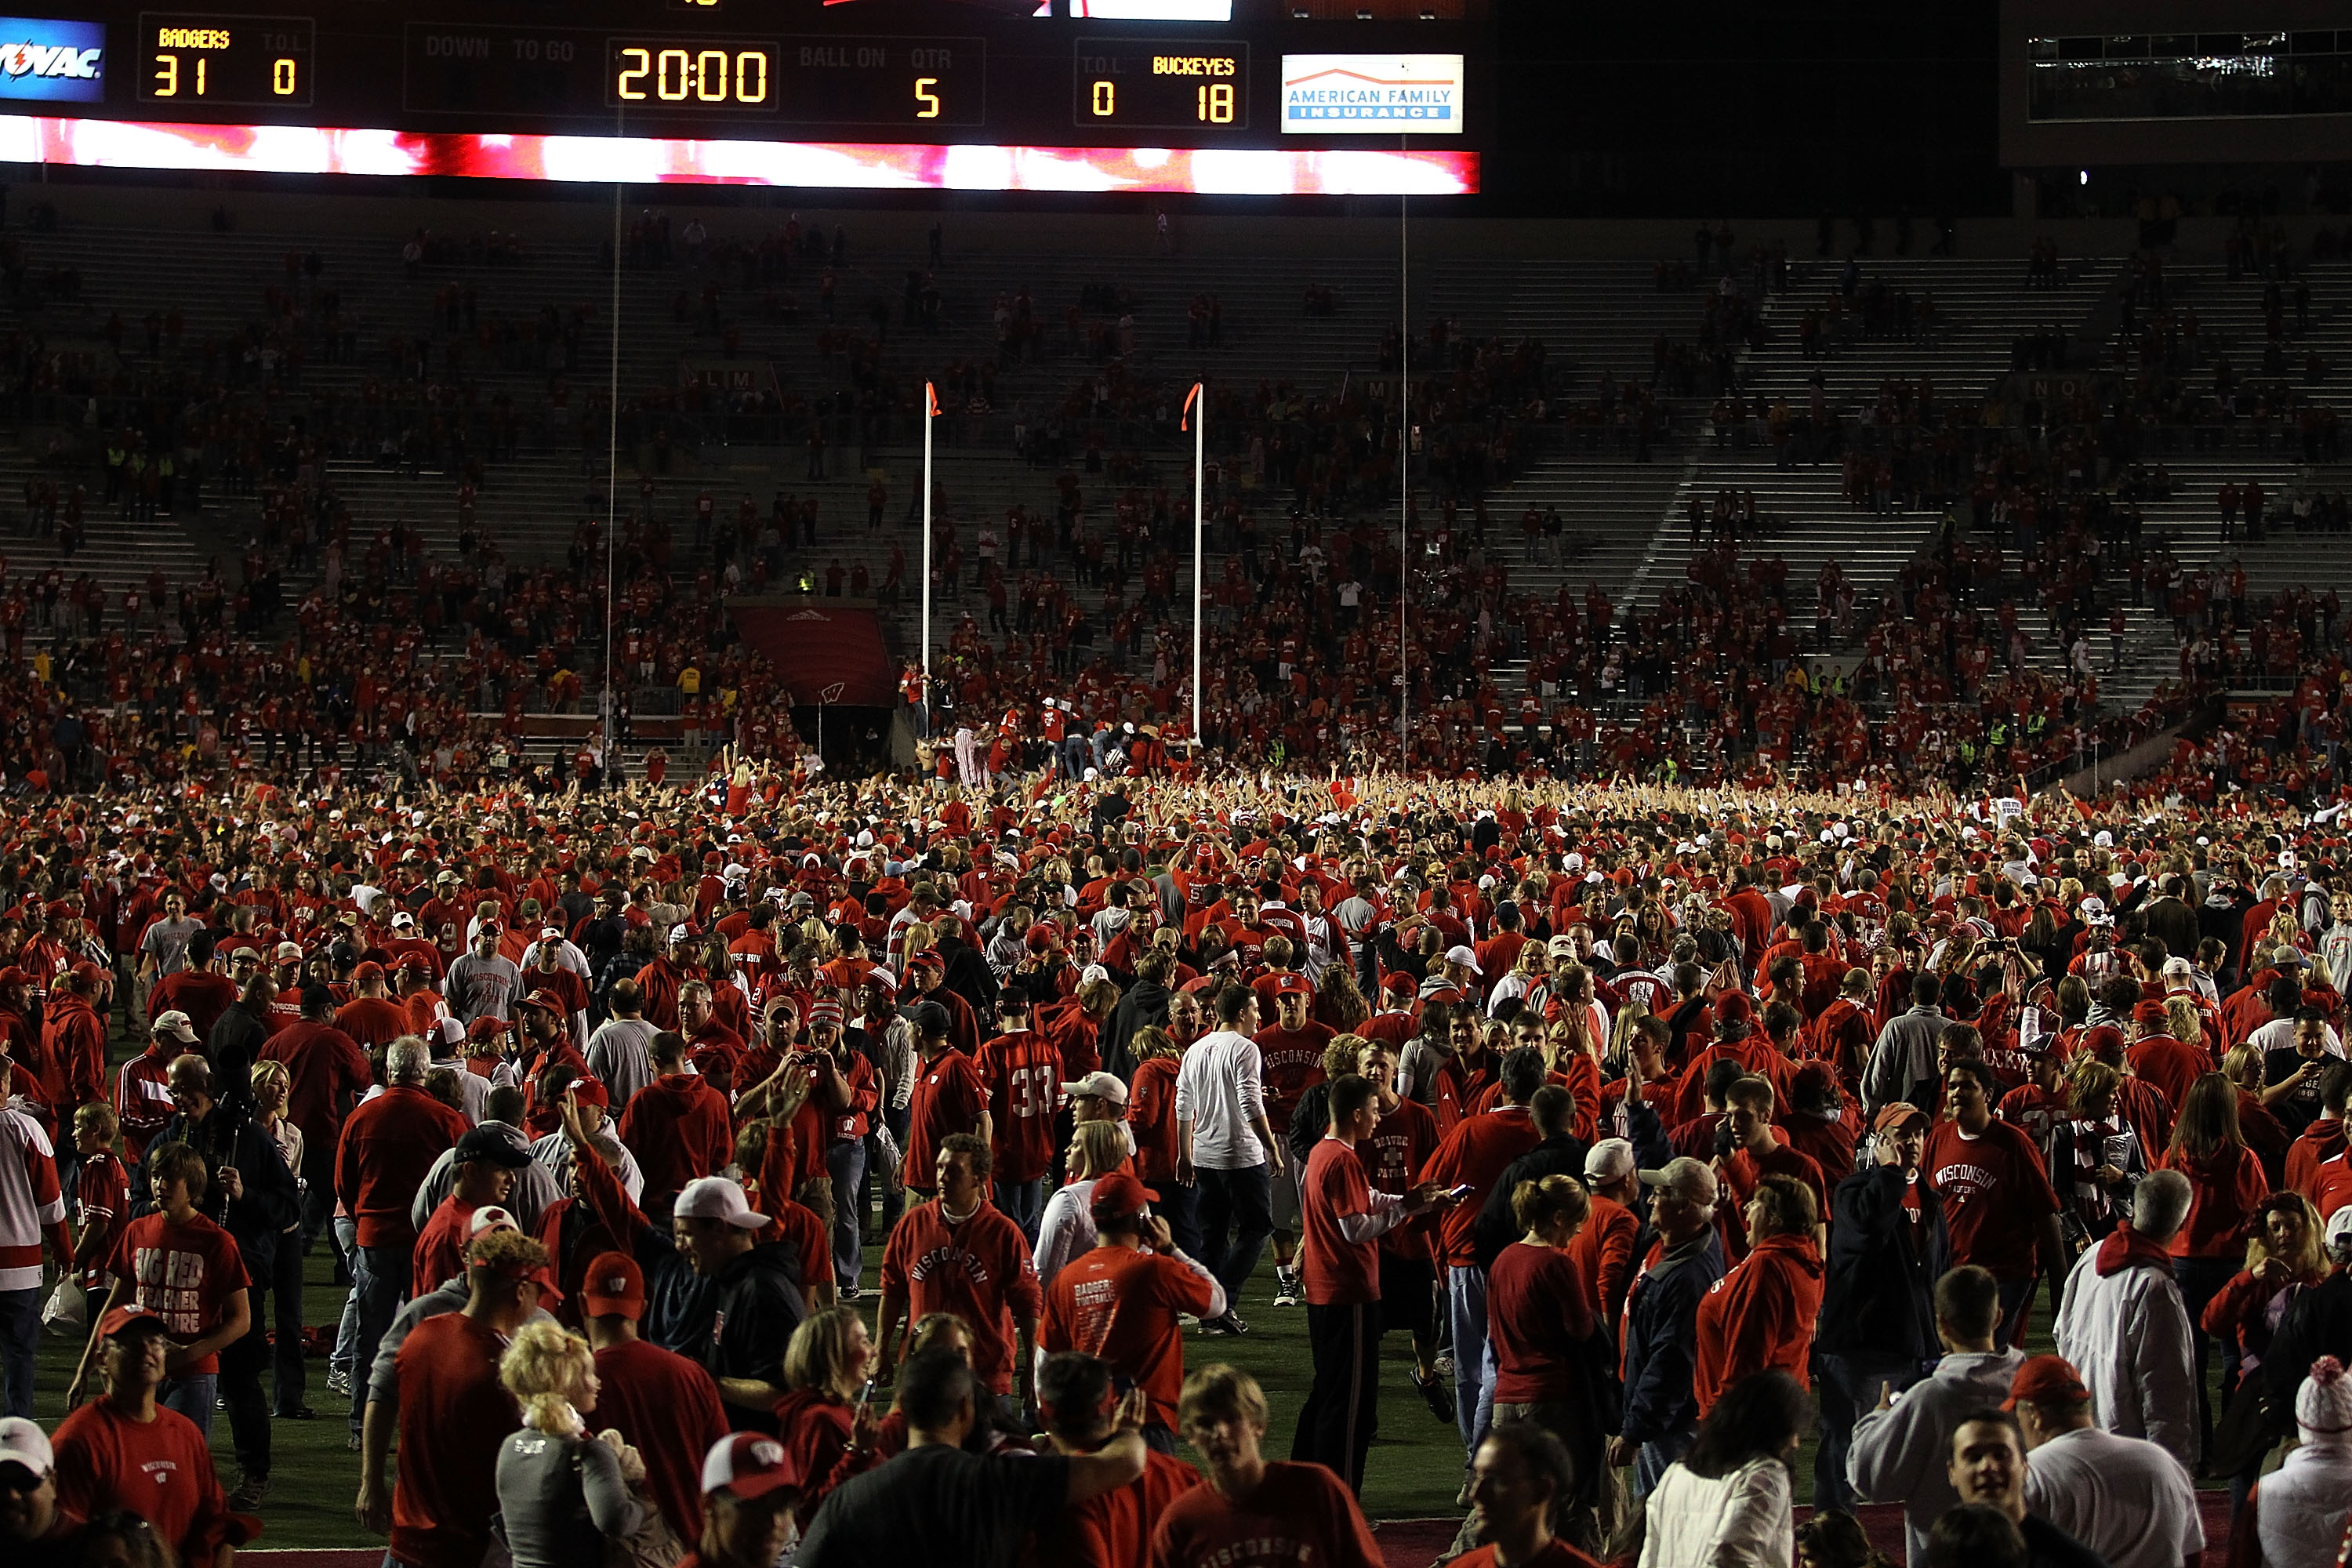 MADISON, WI - OCTOBER 16: Fans of the Wisconsin Badgers poor on to the field following a win against the Ohio State Buckeyes at Camp Randall Stadium on October 16, 2010 in Madison, Wisconsin. Wisconsin defeated Ohio State 31-18. (Photo by Jonathan Daniel/